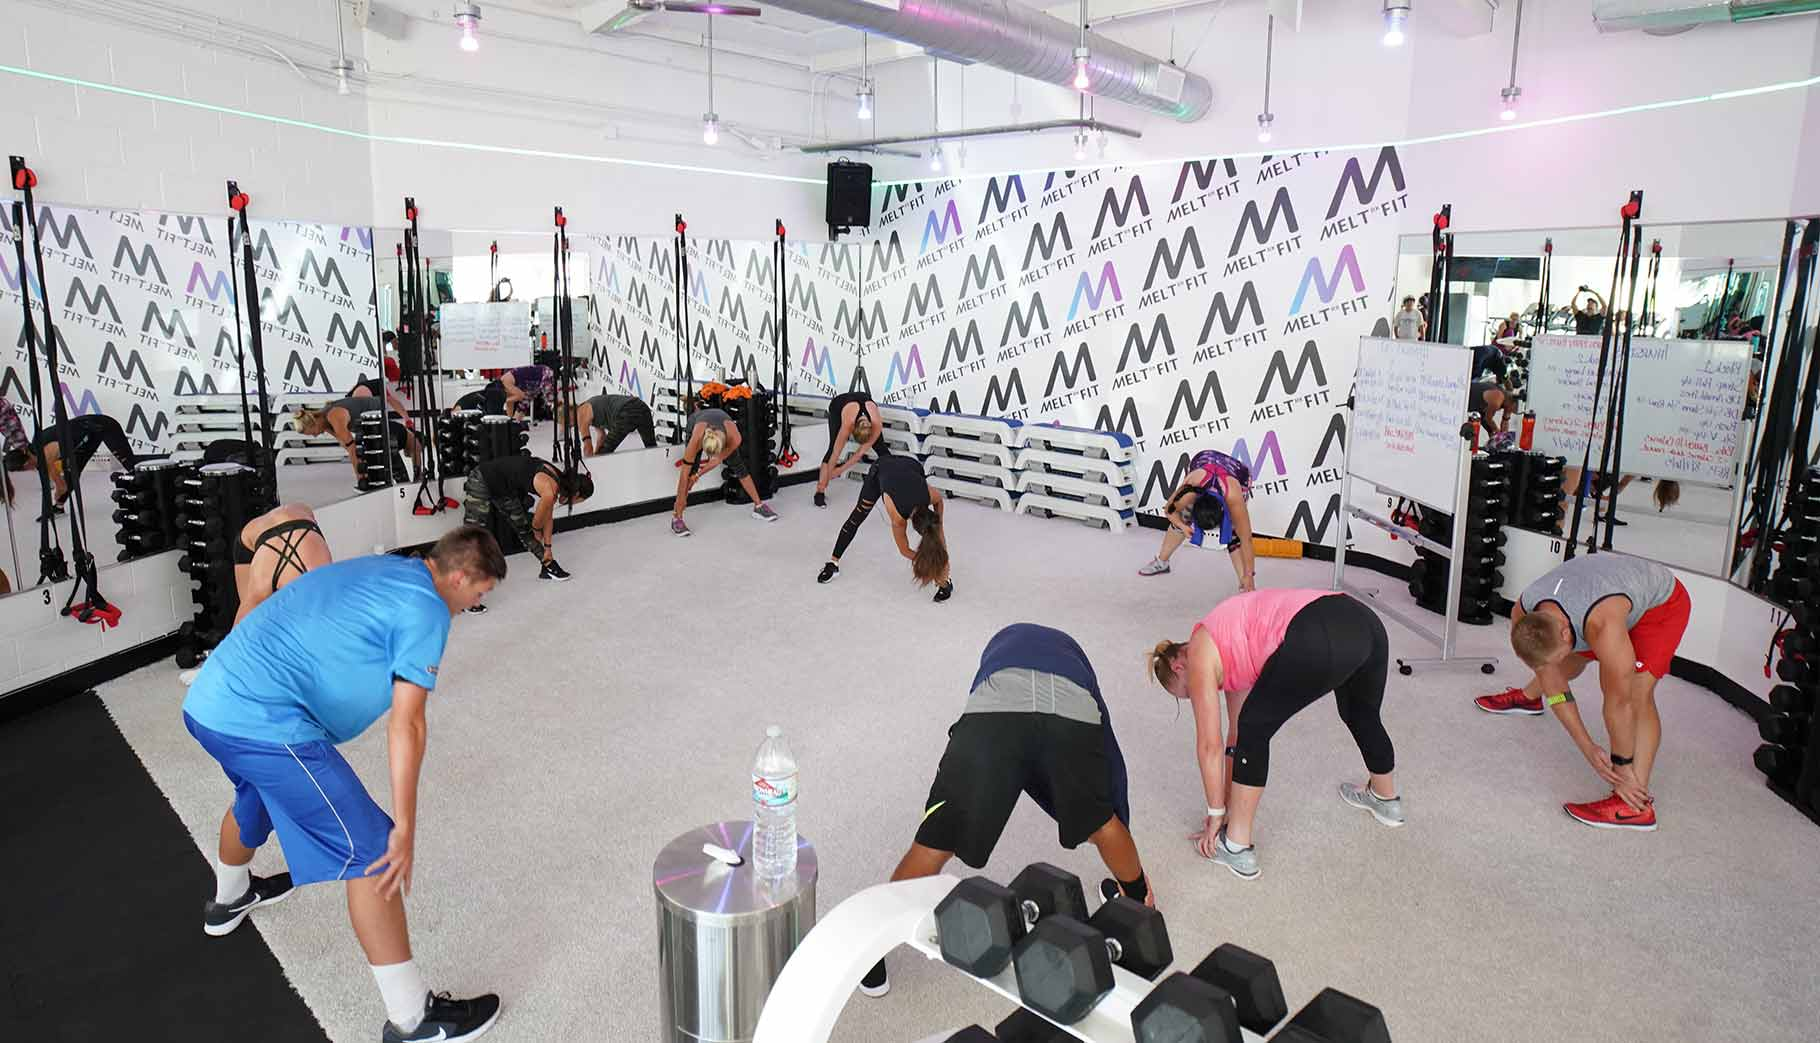 5 Compelling Benefits of Group Fitness Classes